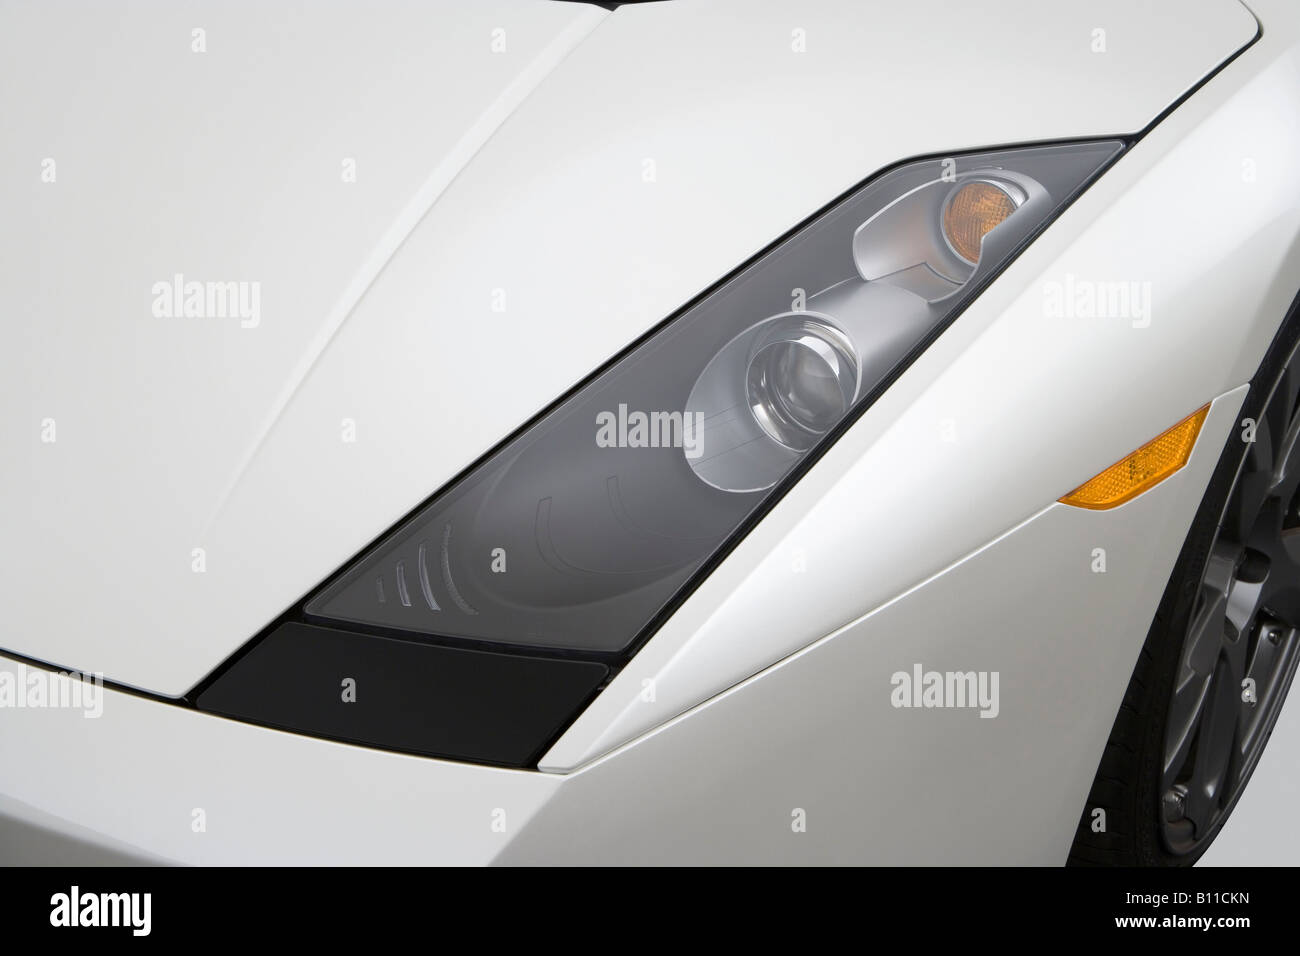 2008 Lamborghini Gallardo Spyder In White Headlight Stock Photo